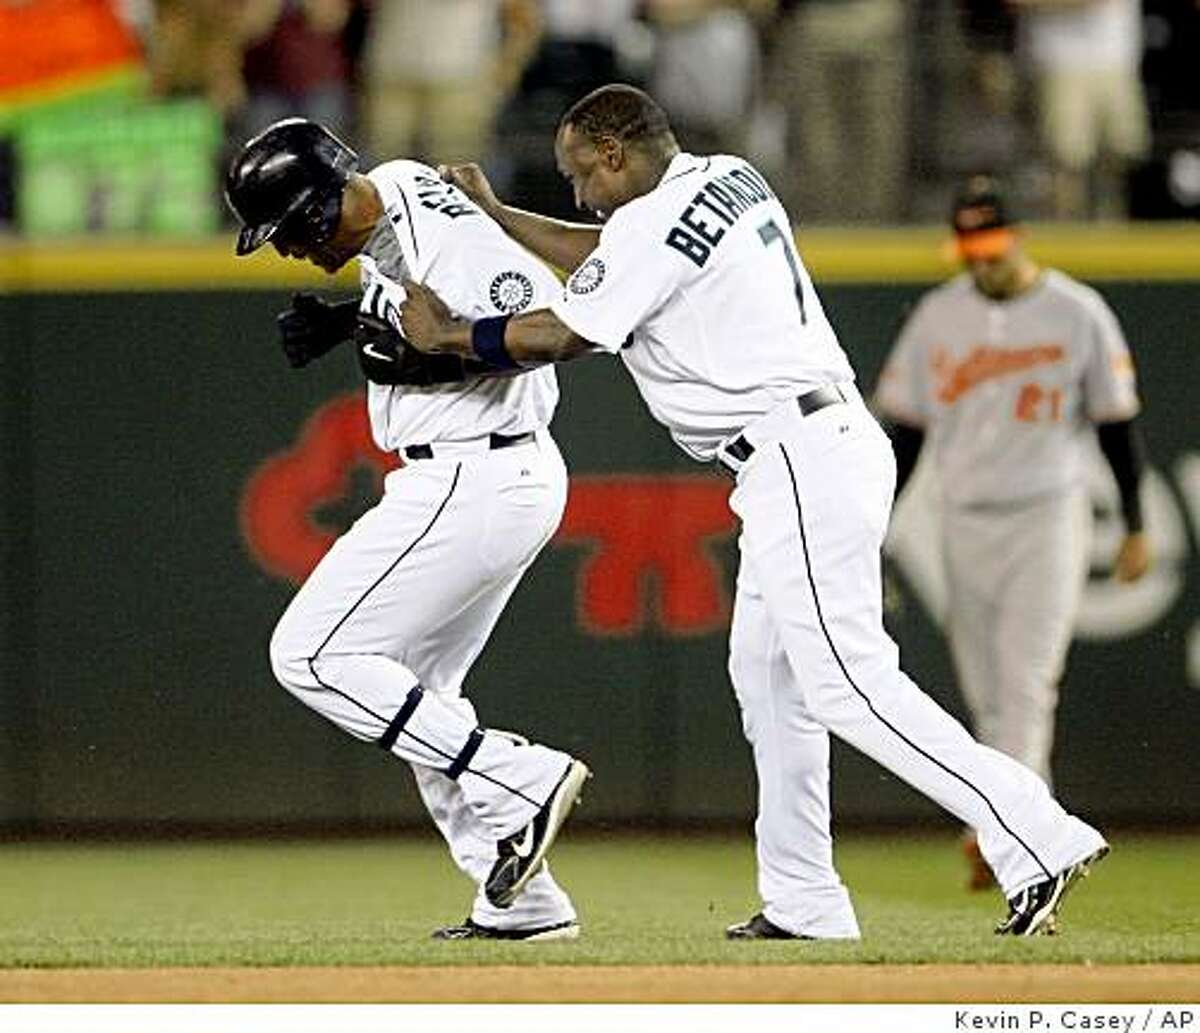 Seattle Mariners' Adrian Beltre, left, is congratulated by teammate Yuniesky Betancourt, after Beltre's game winning single in the bottom of the ninth inning with the bases loaded in a baseball game against the Baltimore Orioles in Seattle, Wednesday, June 3, 2009. Seattle won 3-2. (AP Photo/Kevin P. Casey)